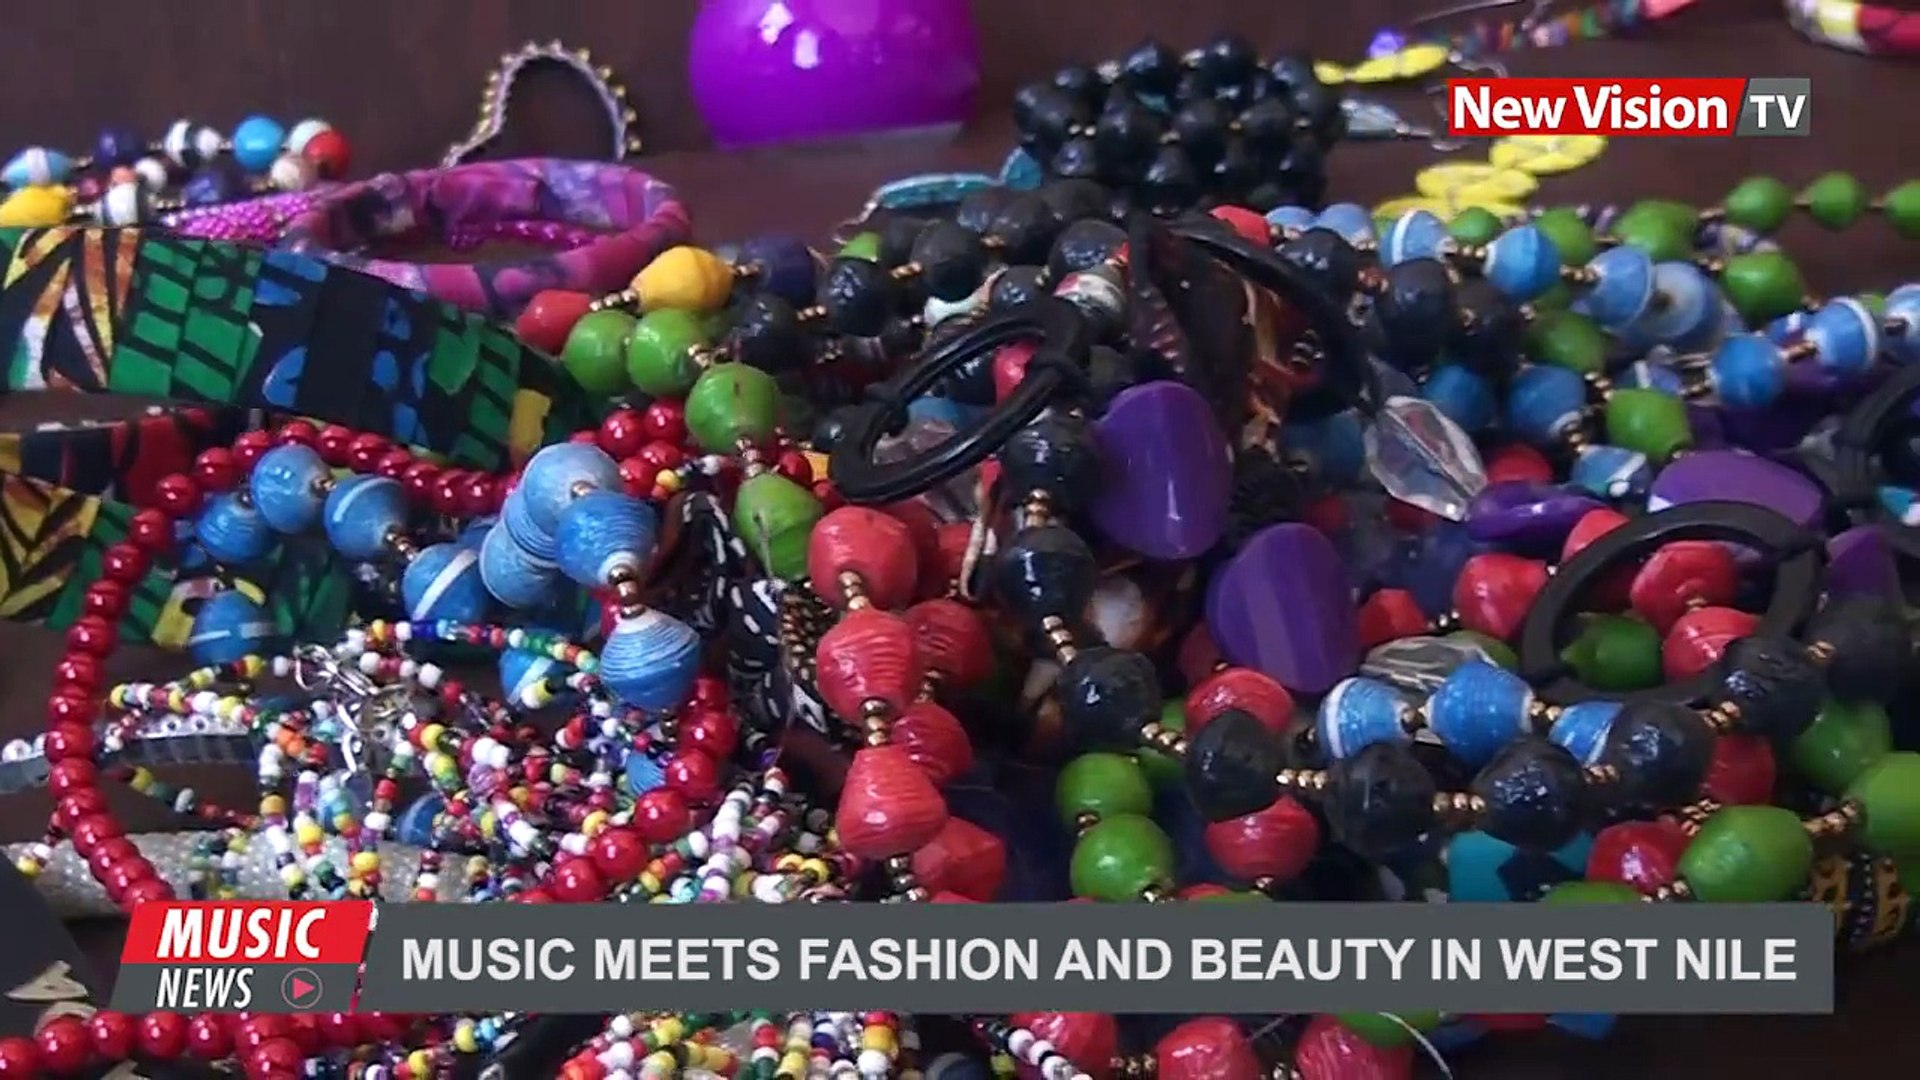 #NewVisionTV#MusicNews:Music meets fashion and beauty in West Nile